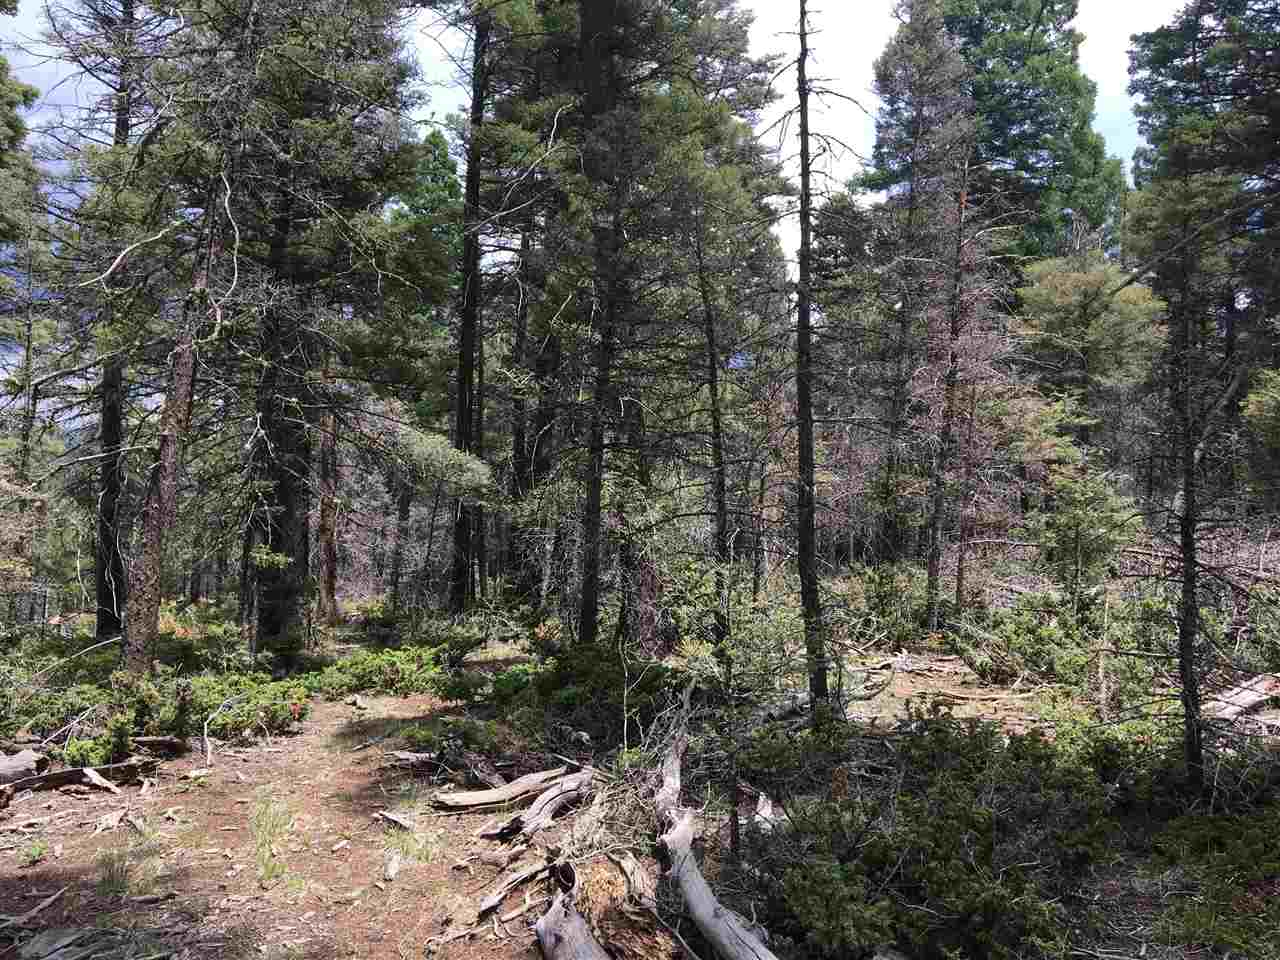 Gorgeous views of Wheeler Peak from this gently sloping/level, ready-to-build lot! This property has been thinned and the building site has been cleared. Driveway is in. Utilities are already to building site. The property is ready for you to build your dream home! This 1.74 acre lot has views of Wheeler Peak, Eagle Nest Lake, Mt. Baldy and Touch-Me-Not. Beautiful sunsets! Just minutes from town, yet very secluded. Walk one block to look over the Angel Fire Ski mountain. Access is easy, even in winter and driveway is level. Lots of trees and wildlife